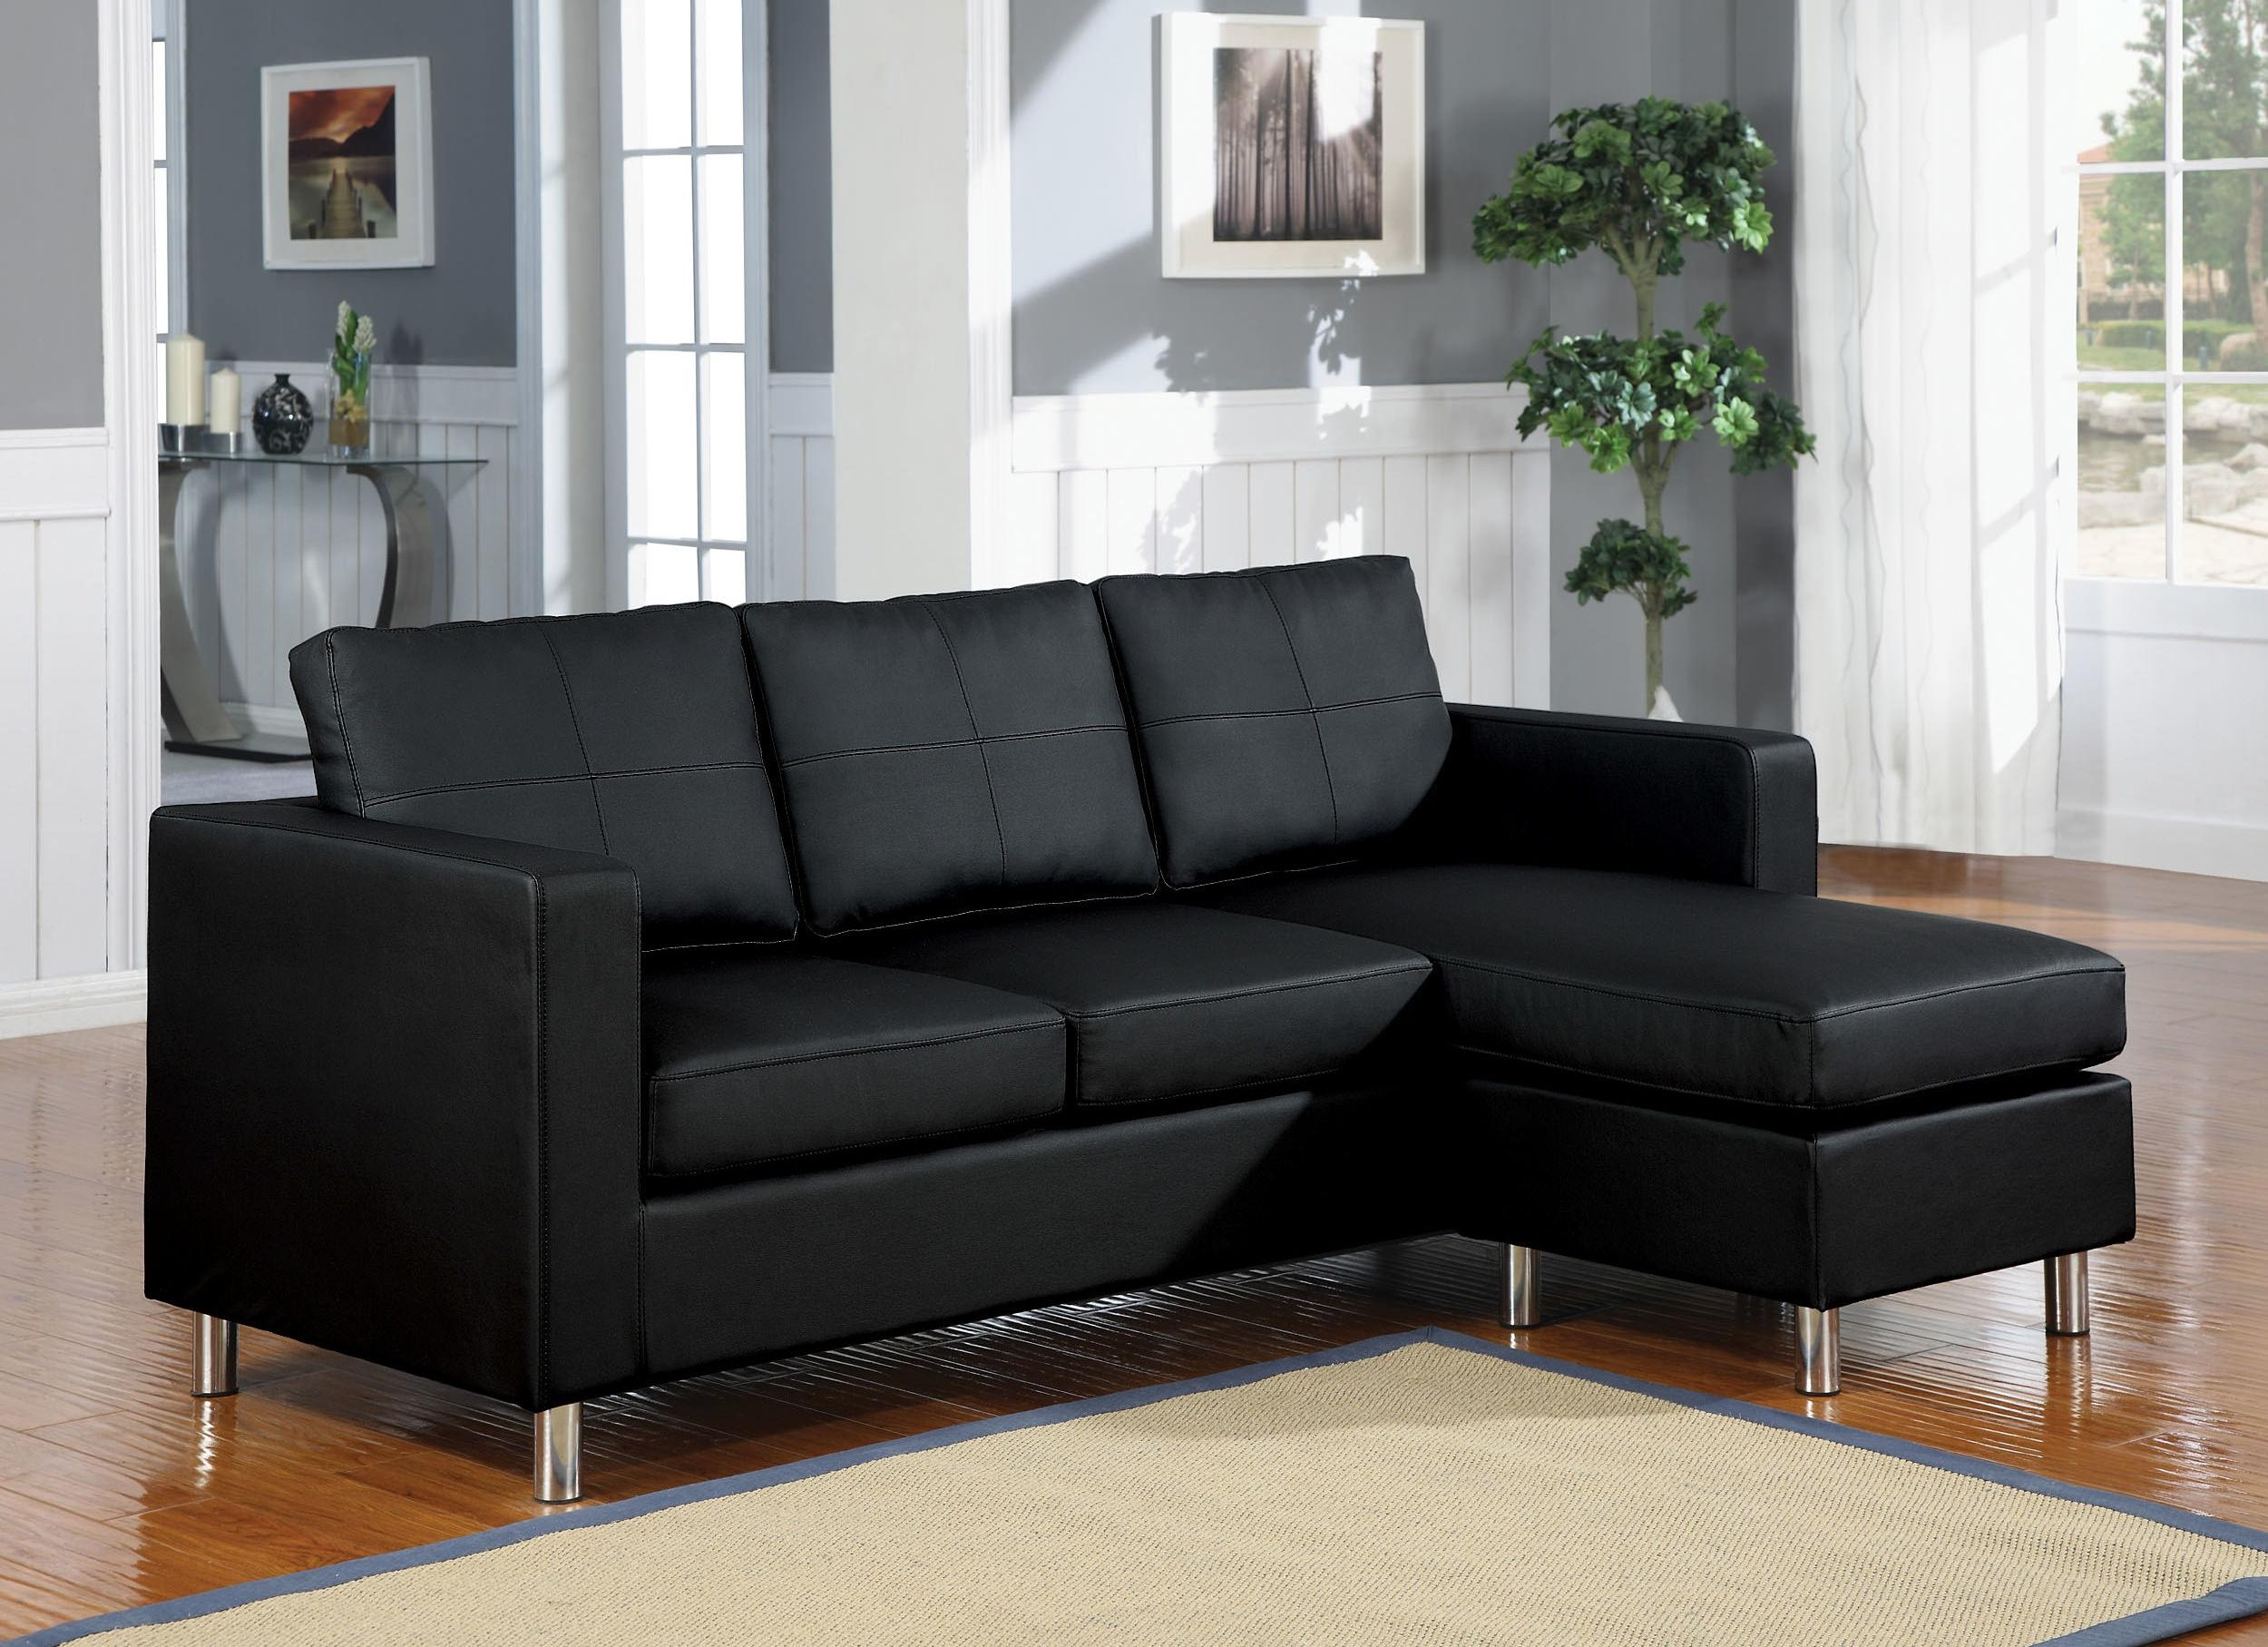 Furniture & Sofa: Perfect Small Spaces Configurable Sectional Sofa Inside Sectional Small Spaces (View 4 of 20)